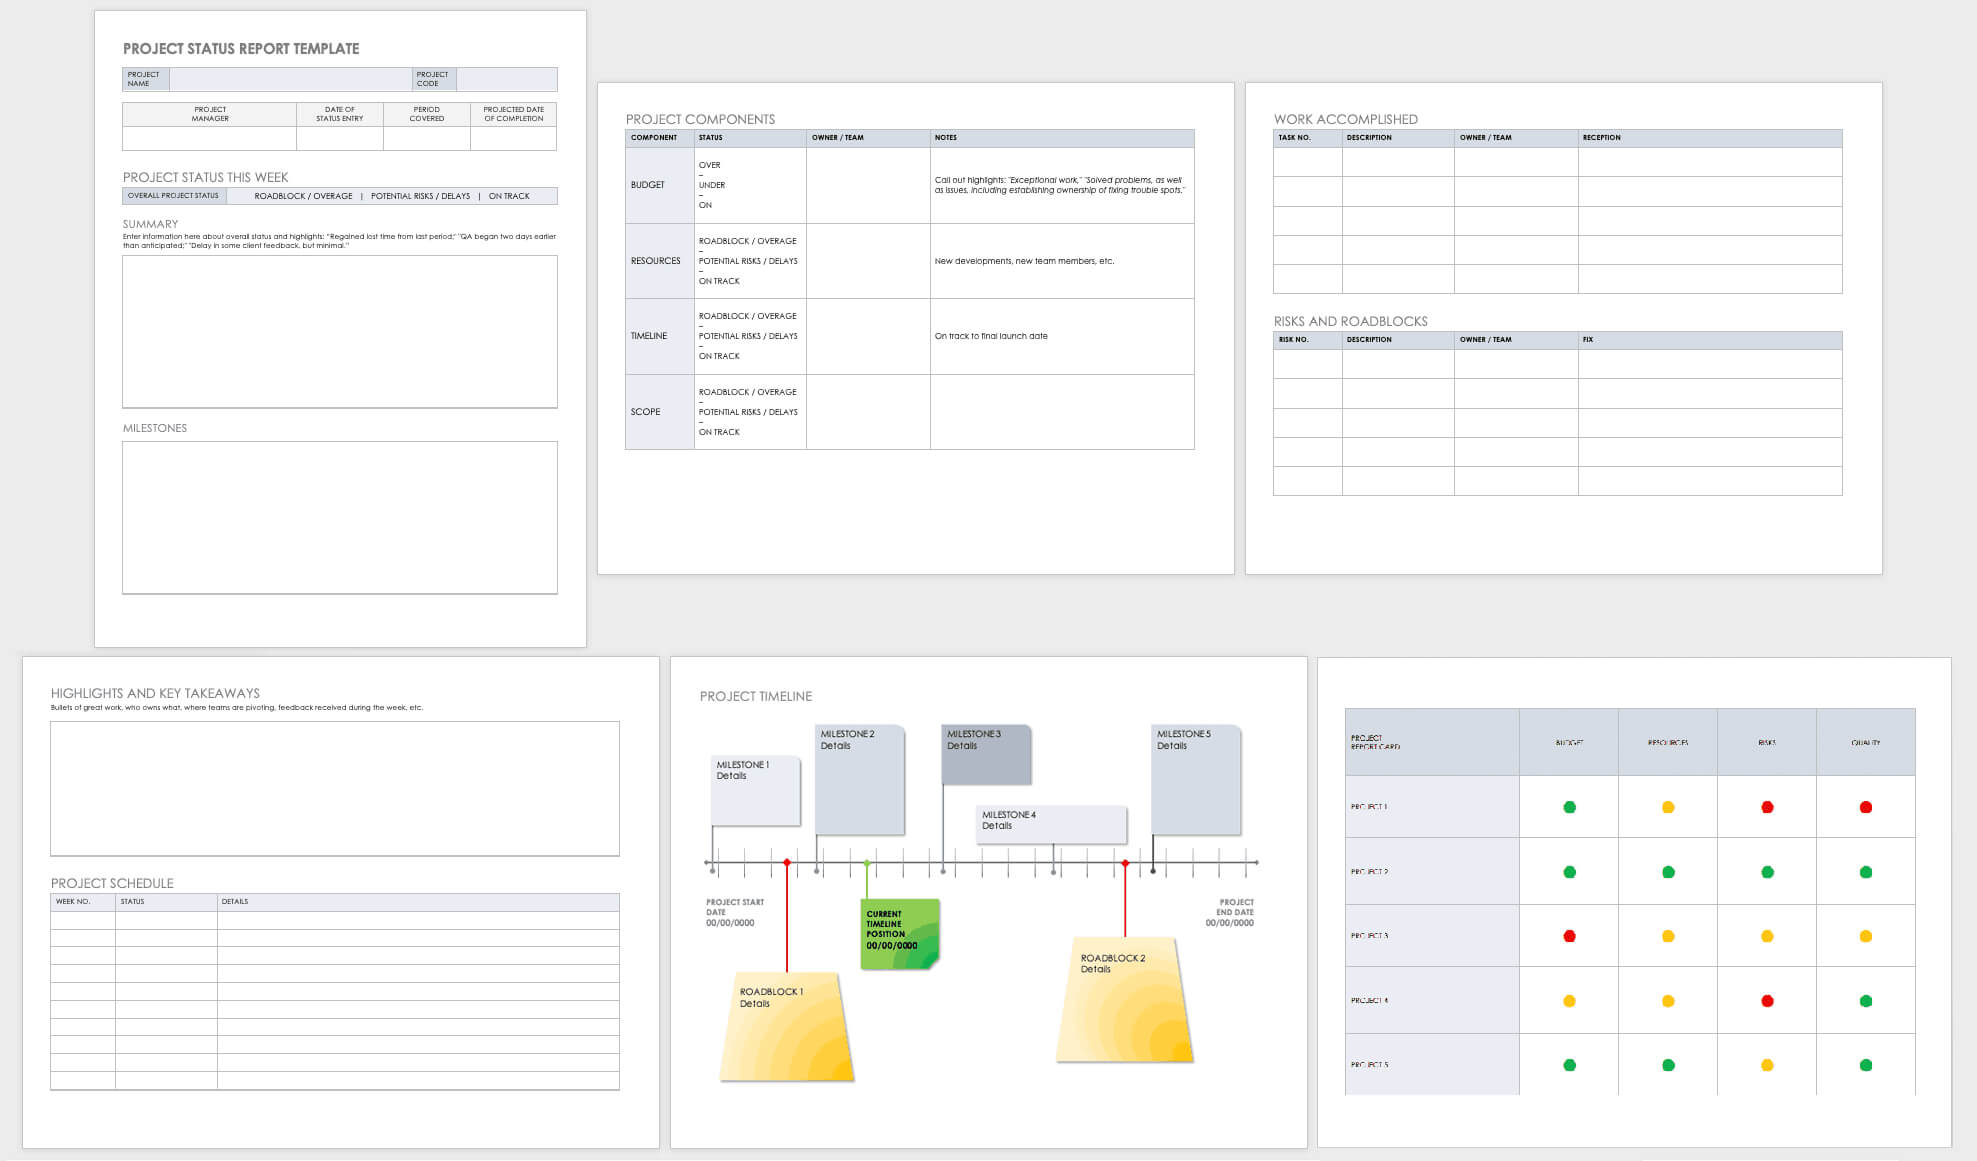 Free Project Report Templates | Smartsheet Throughout Project Manager Status Report Template